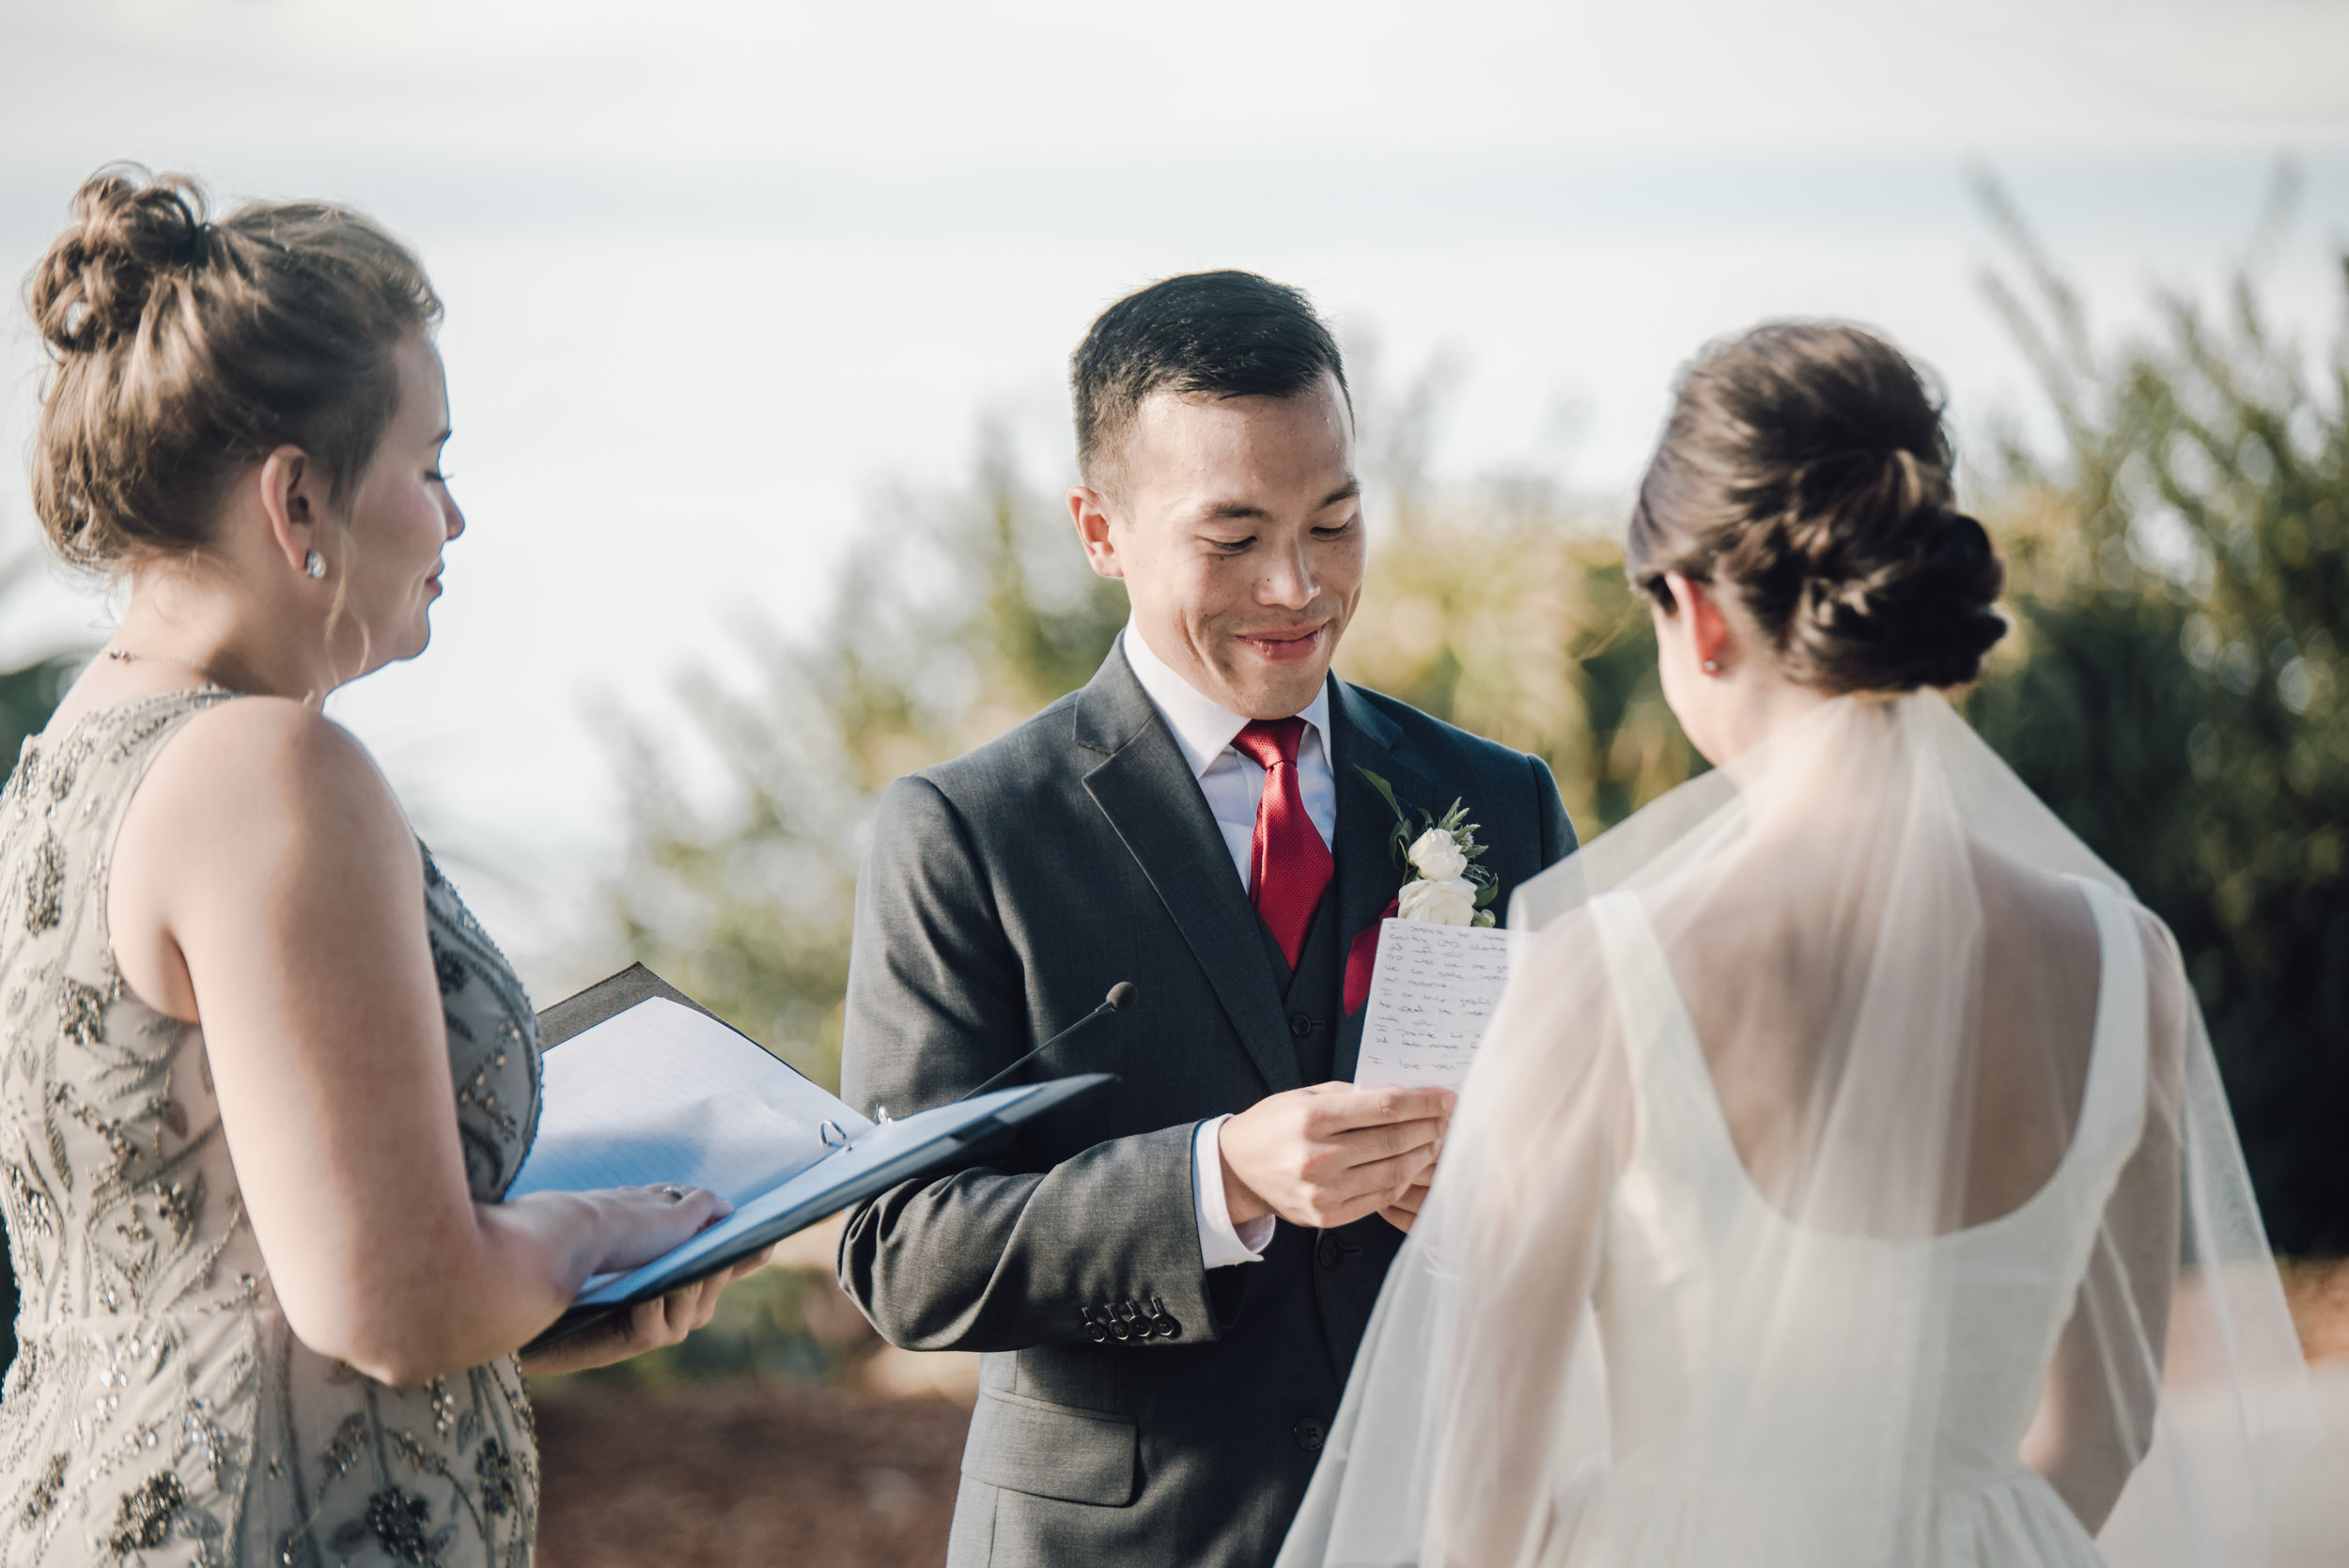 Main and Simple Photography_2017_Weddings_SanDiego_T+E-1223.jpg